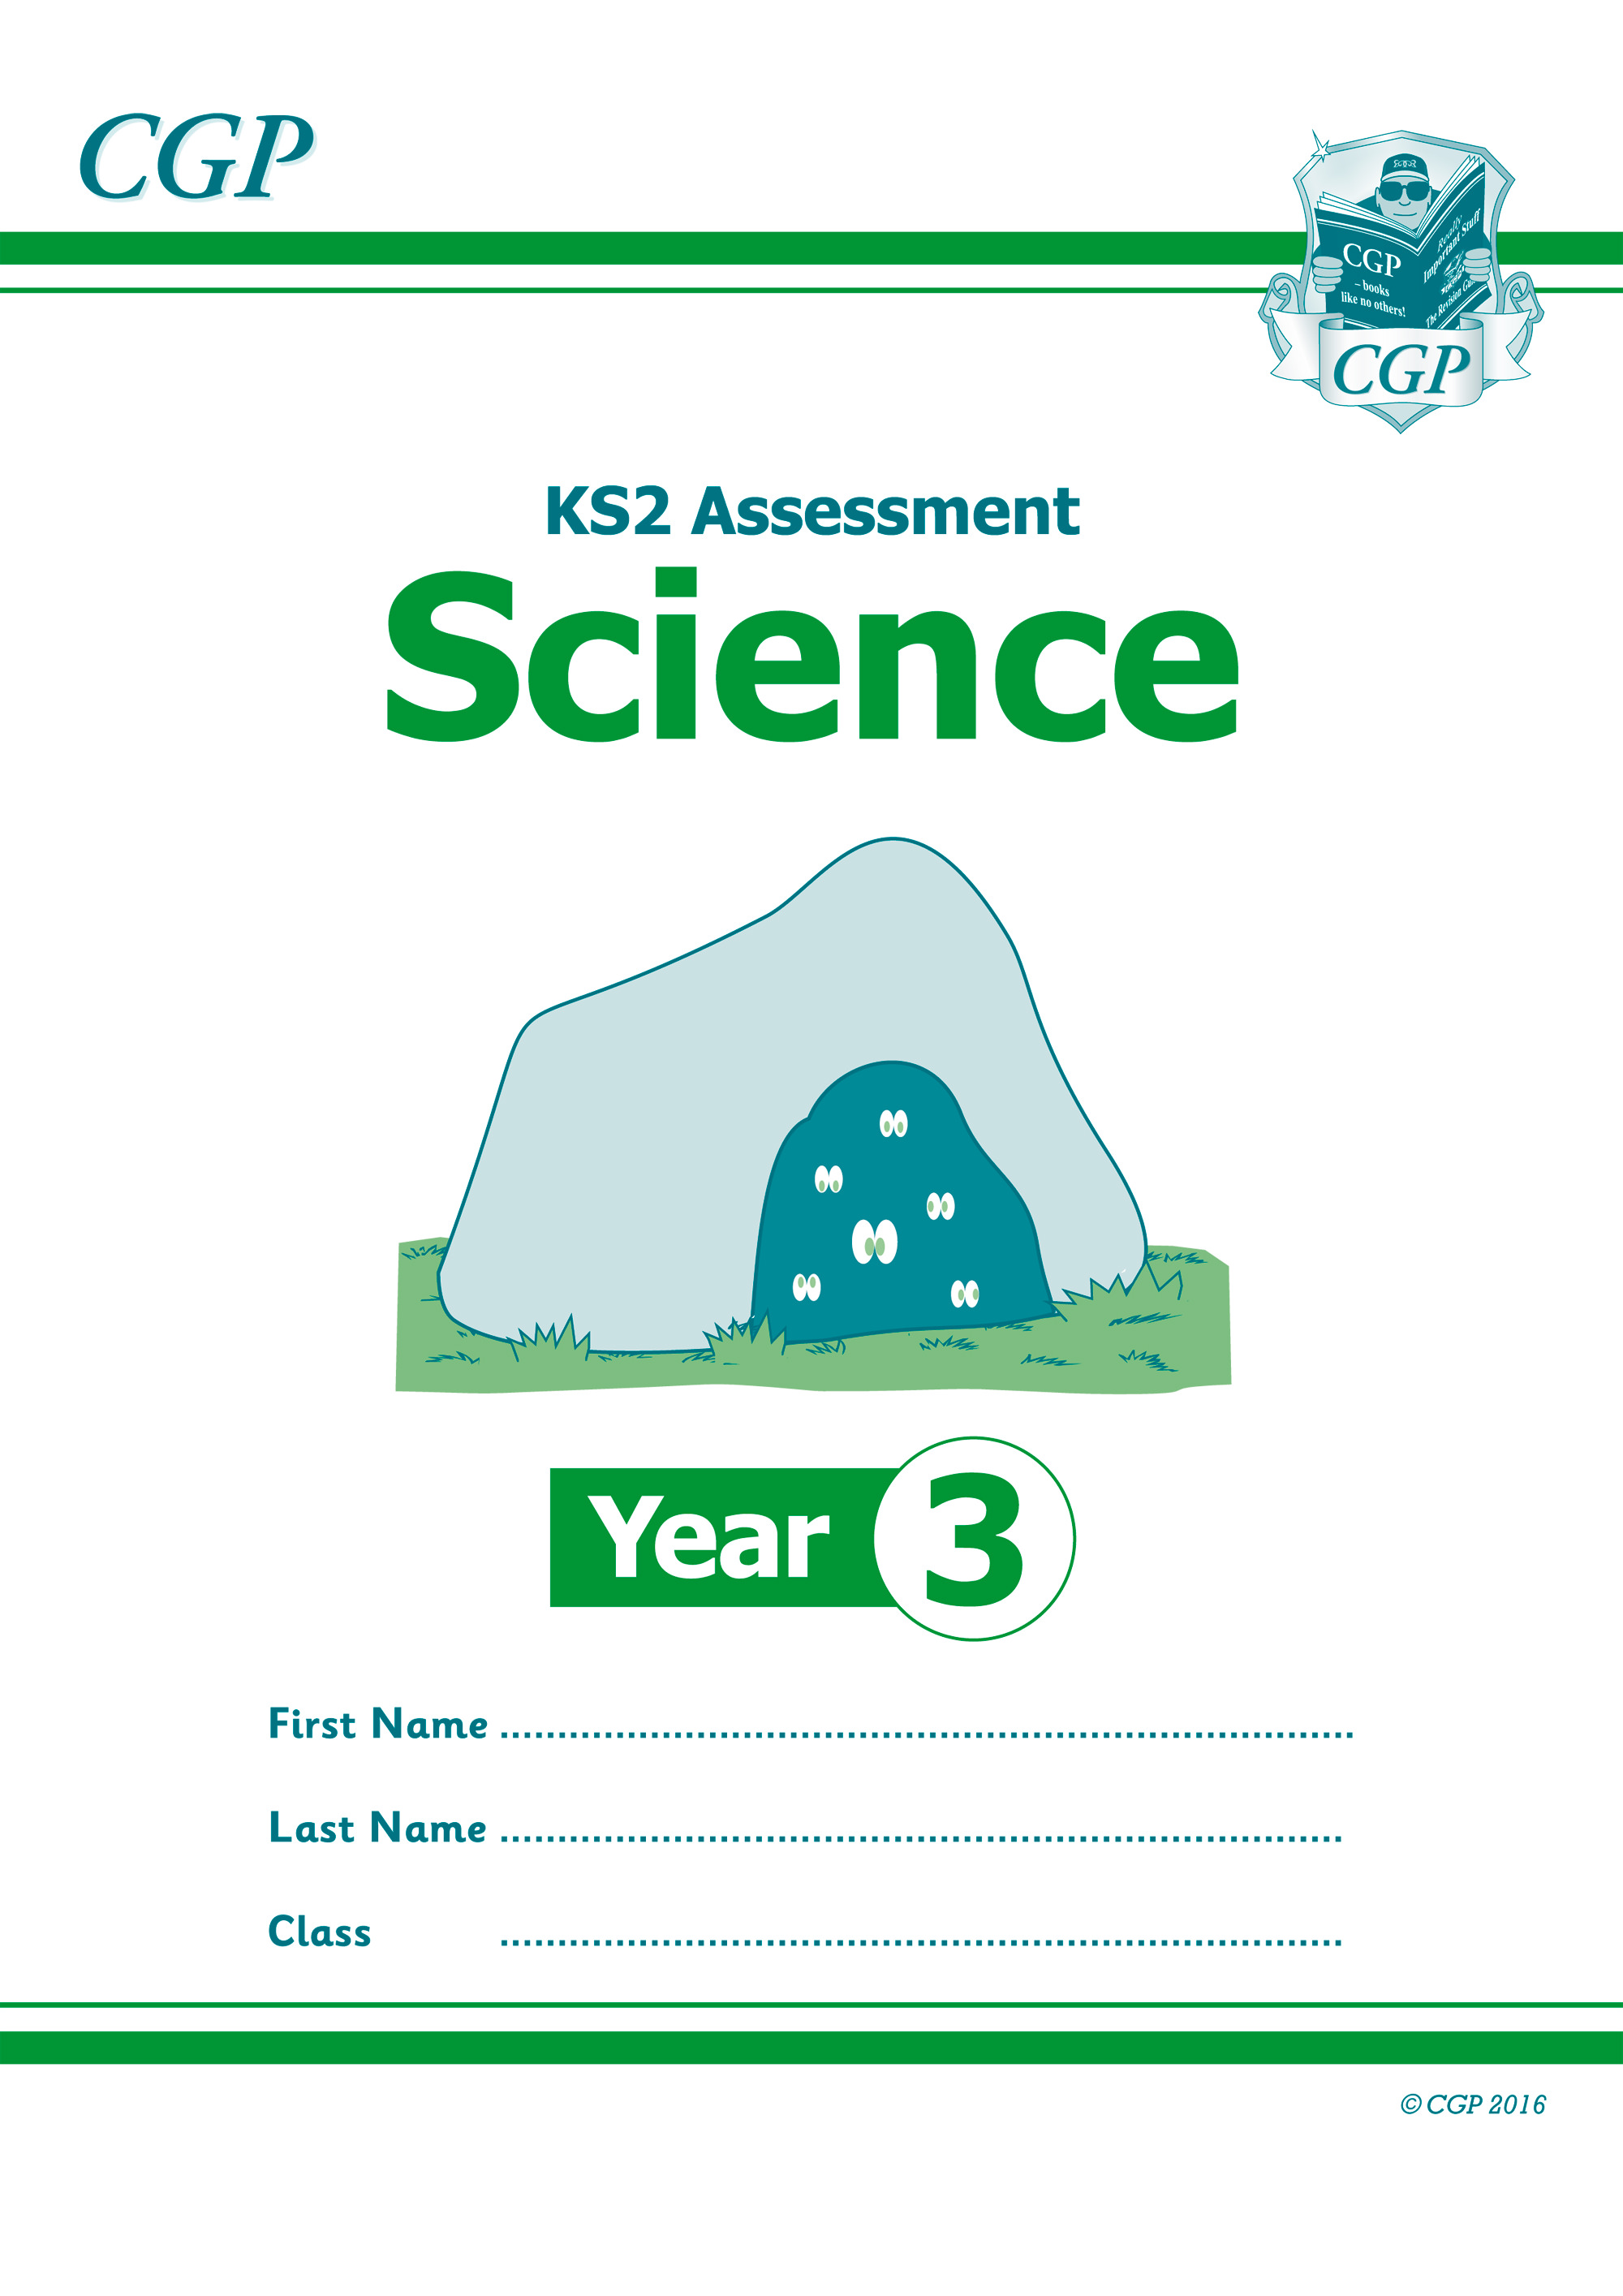 S3P21 - New KS2 Assessment: Science - Year 3 Test